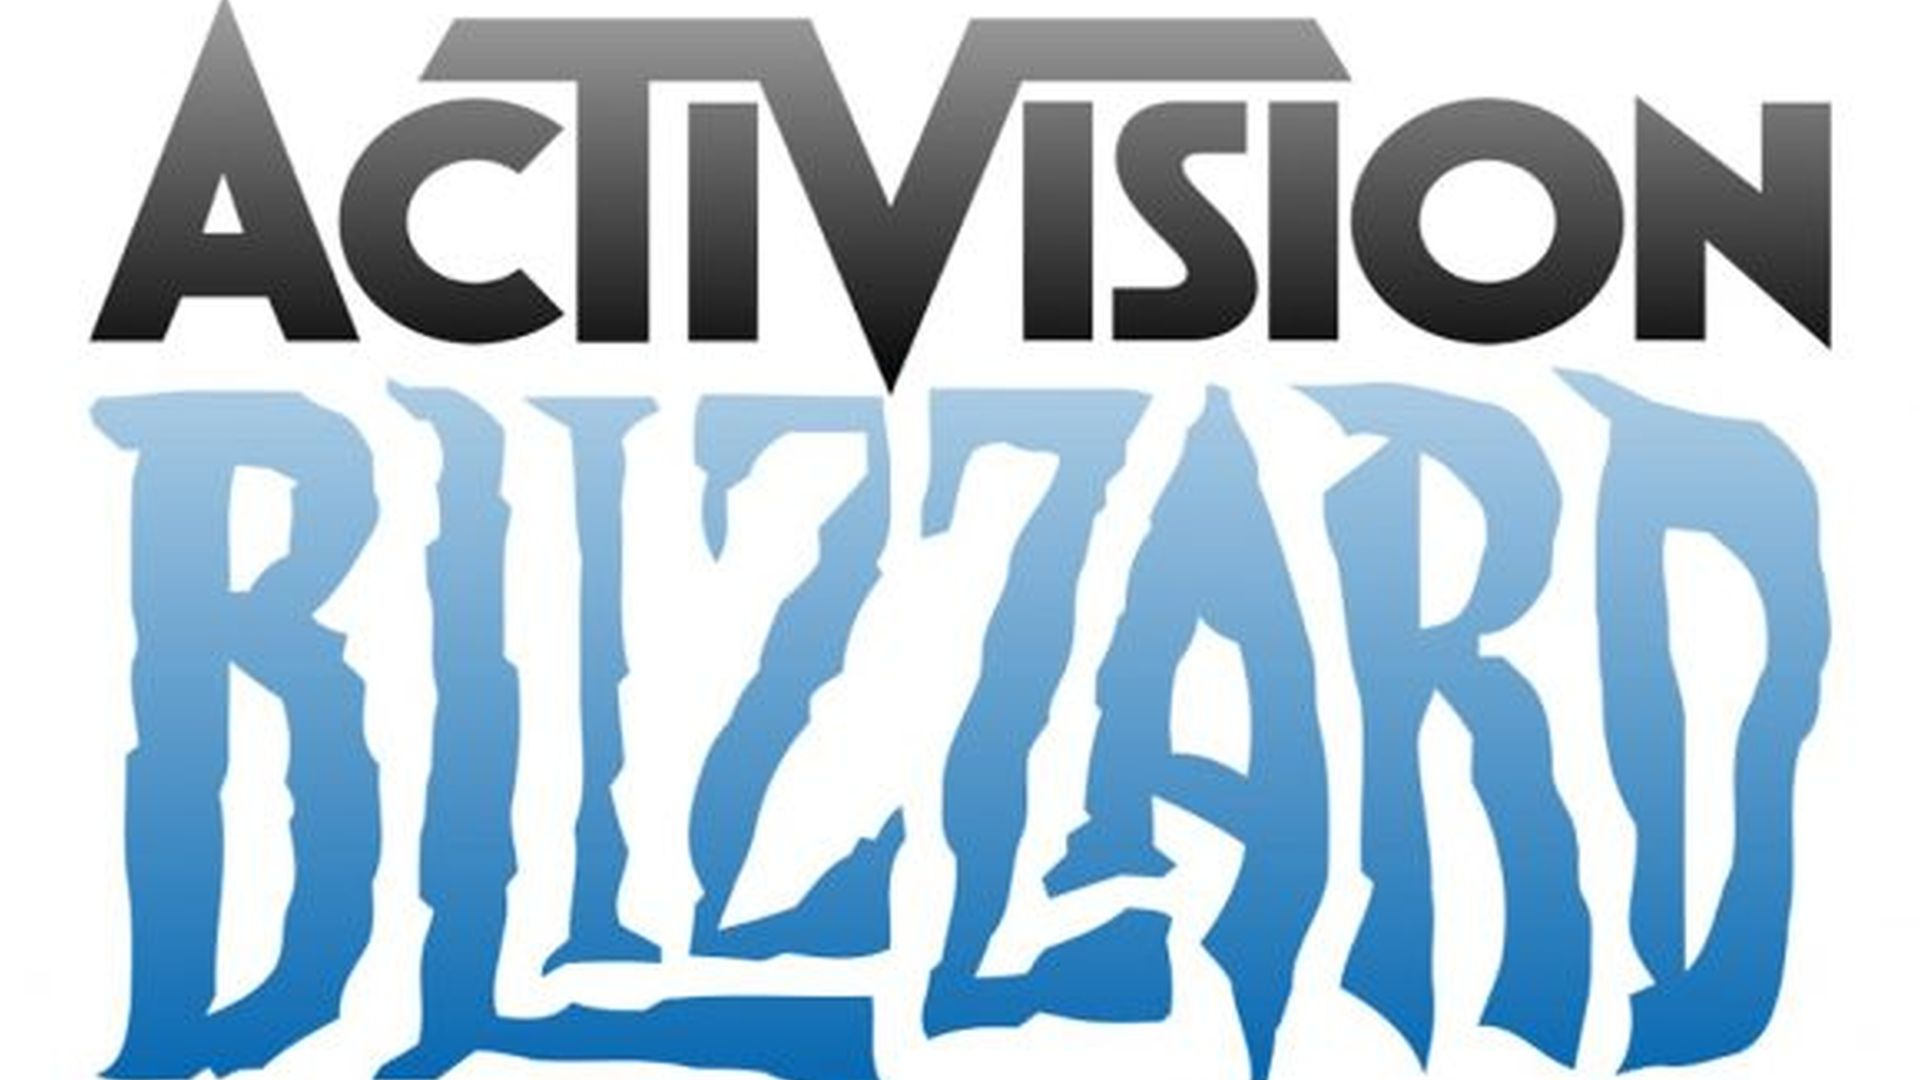 """New IP initiatives"" are in the works at both Activision and Blizzard"